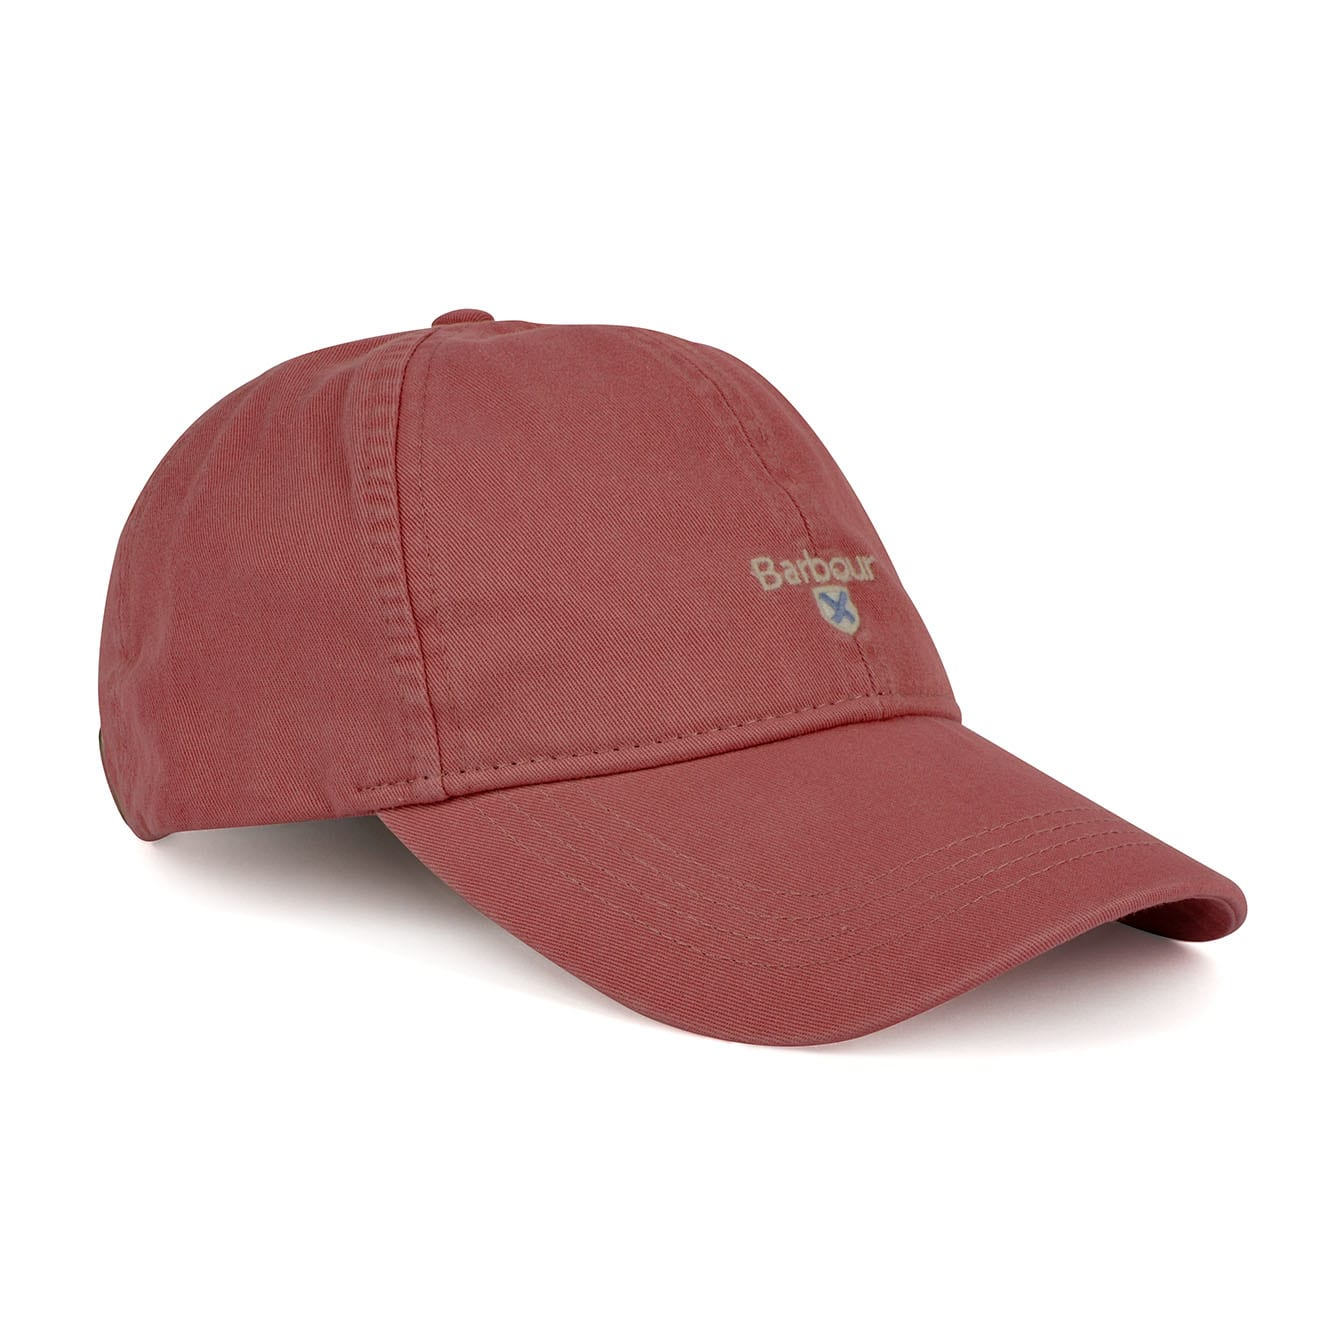 Barbour Cascade Sports Cap Dusty Pink